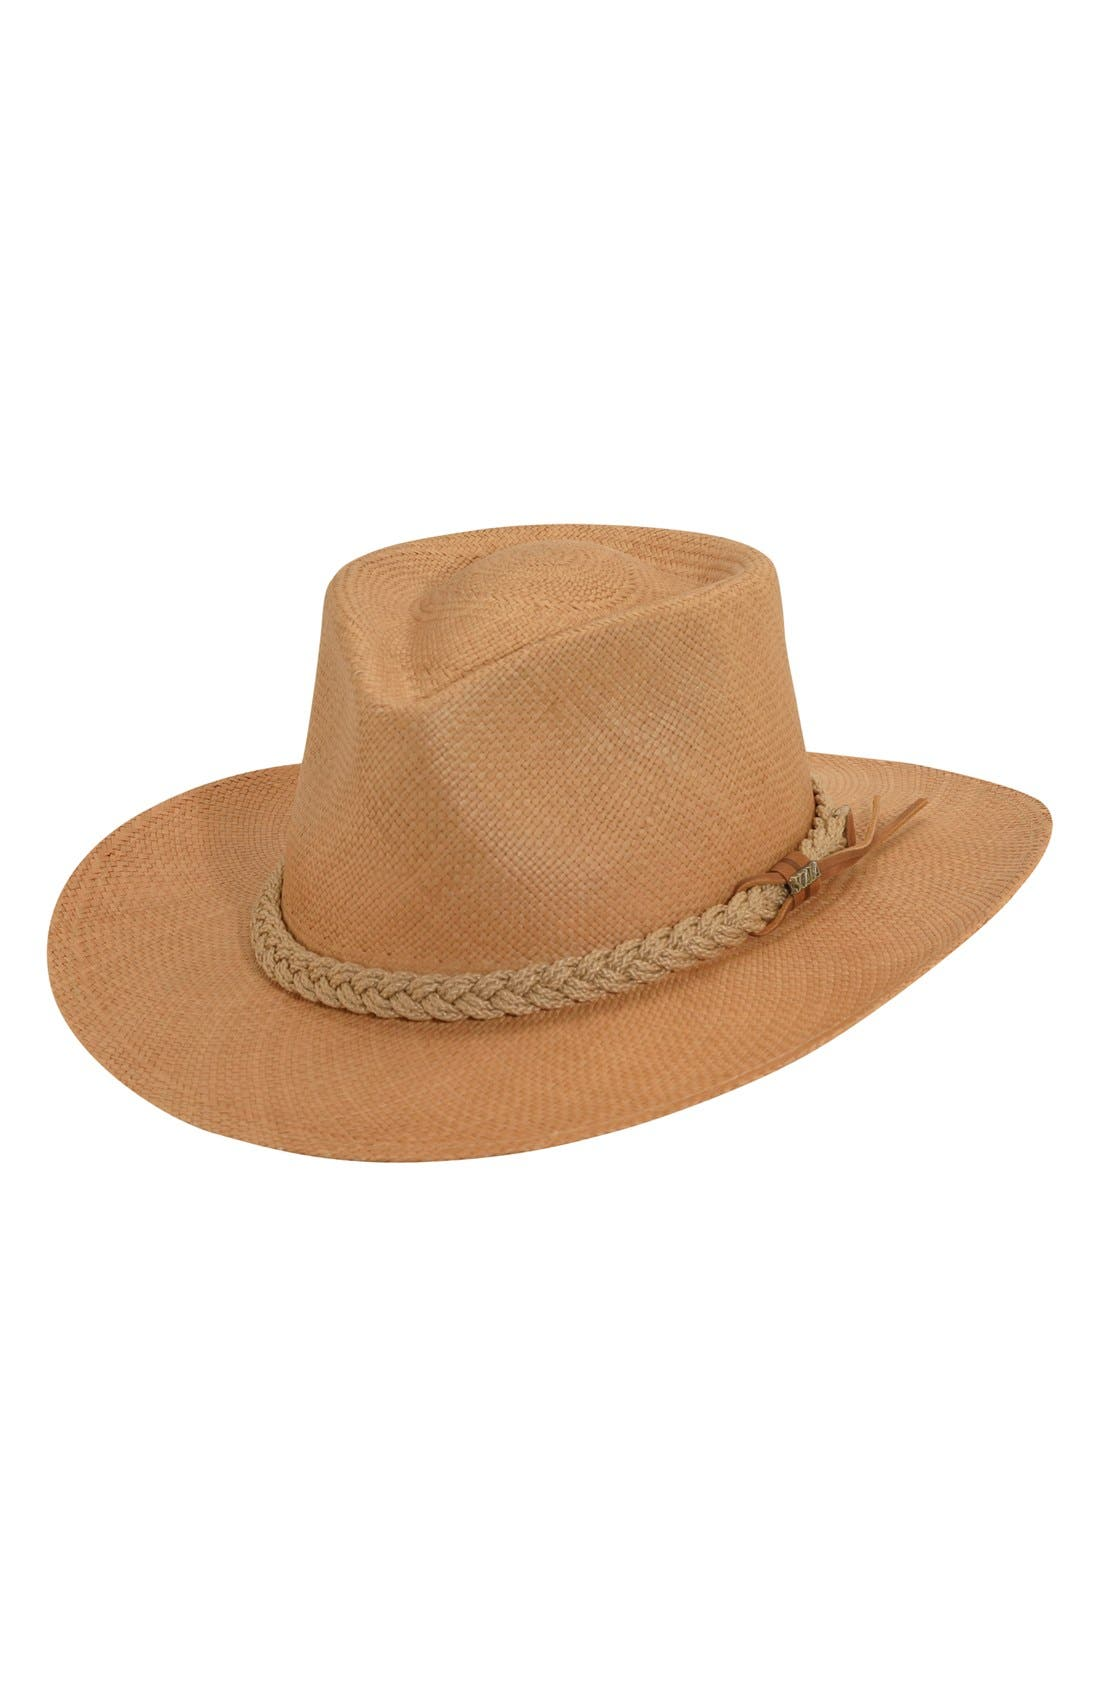 Panama Straw Outback Hat,                         Main,                         color, PUTTY